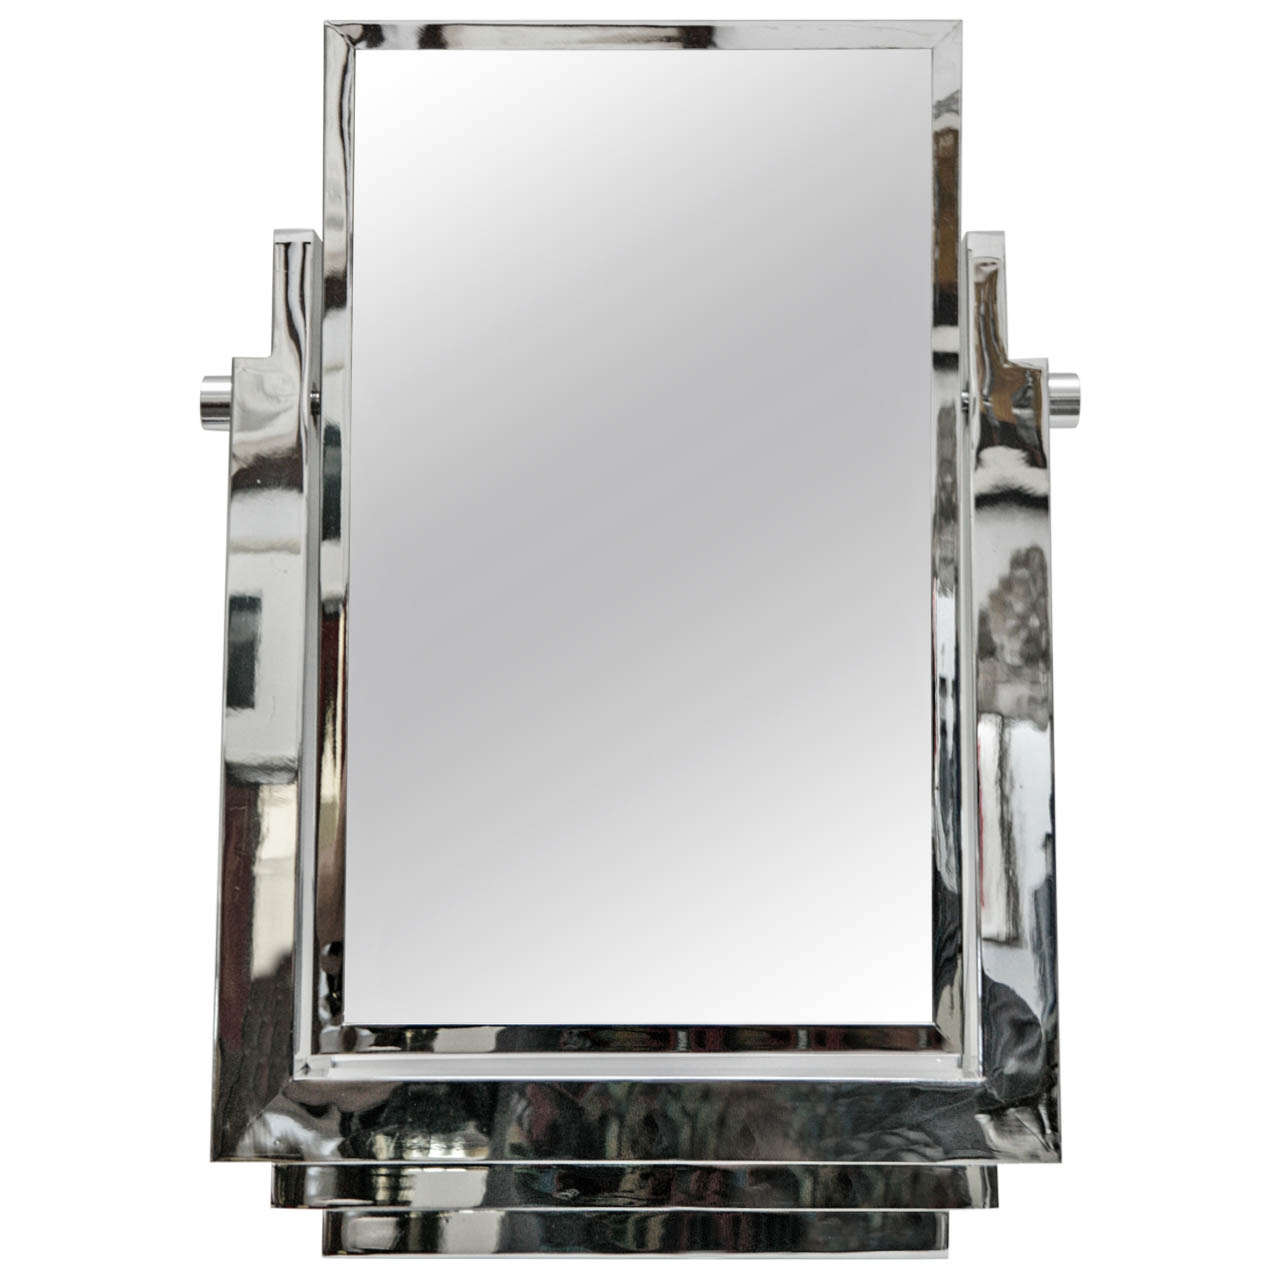 Polished Chrome Tabletop Vanity Mirror In The Style Of La Maison Desny For  Sale